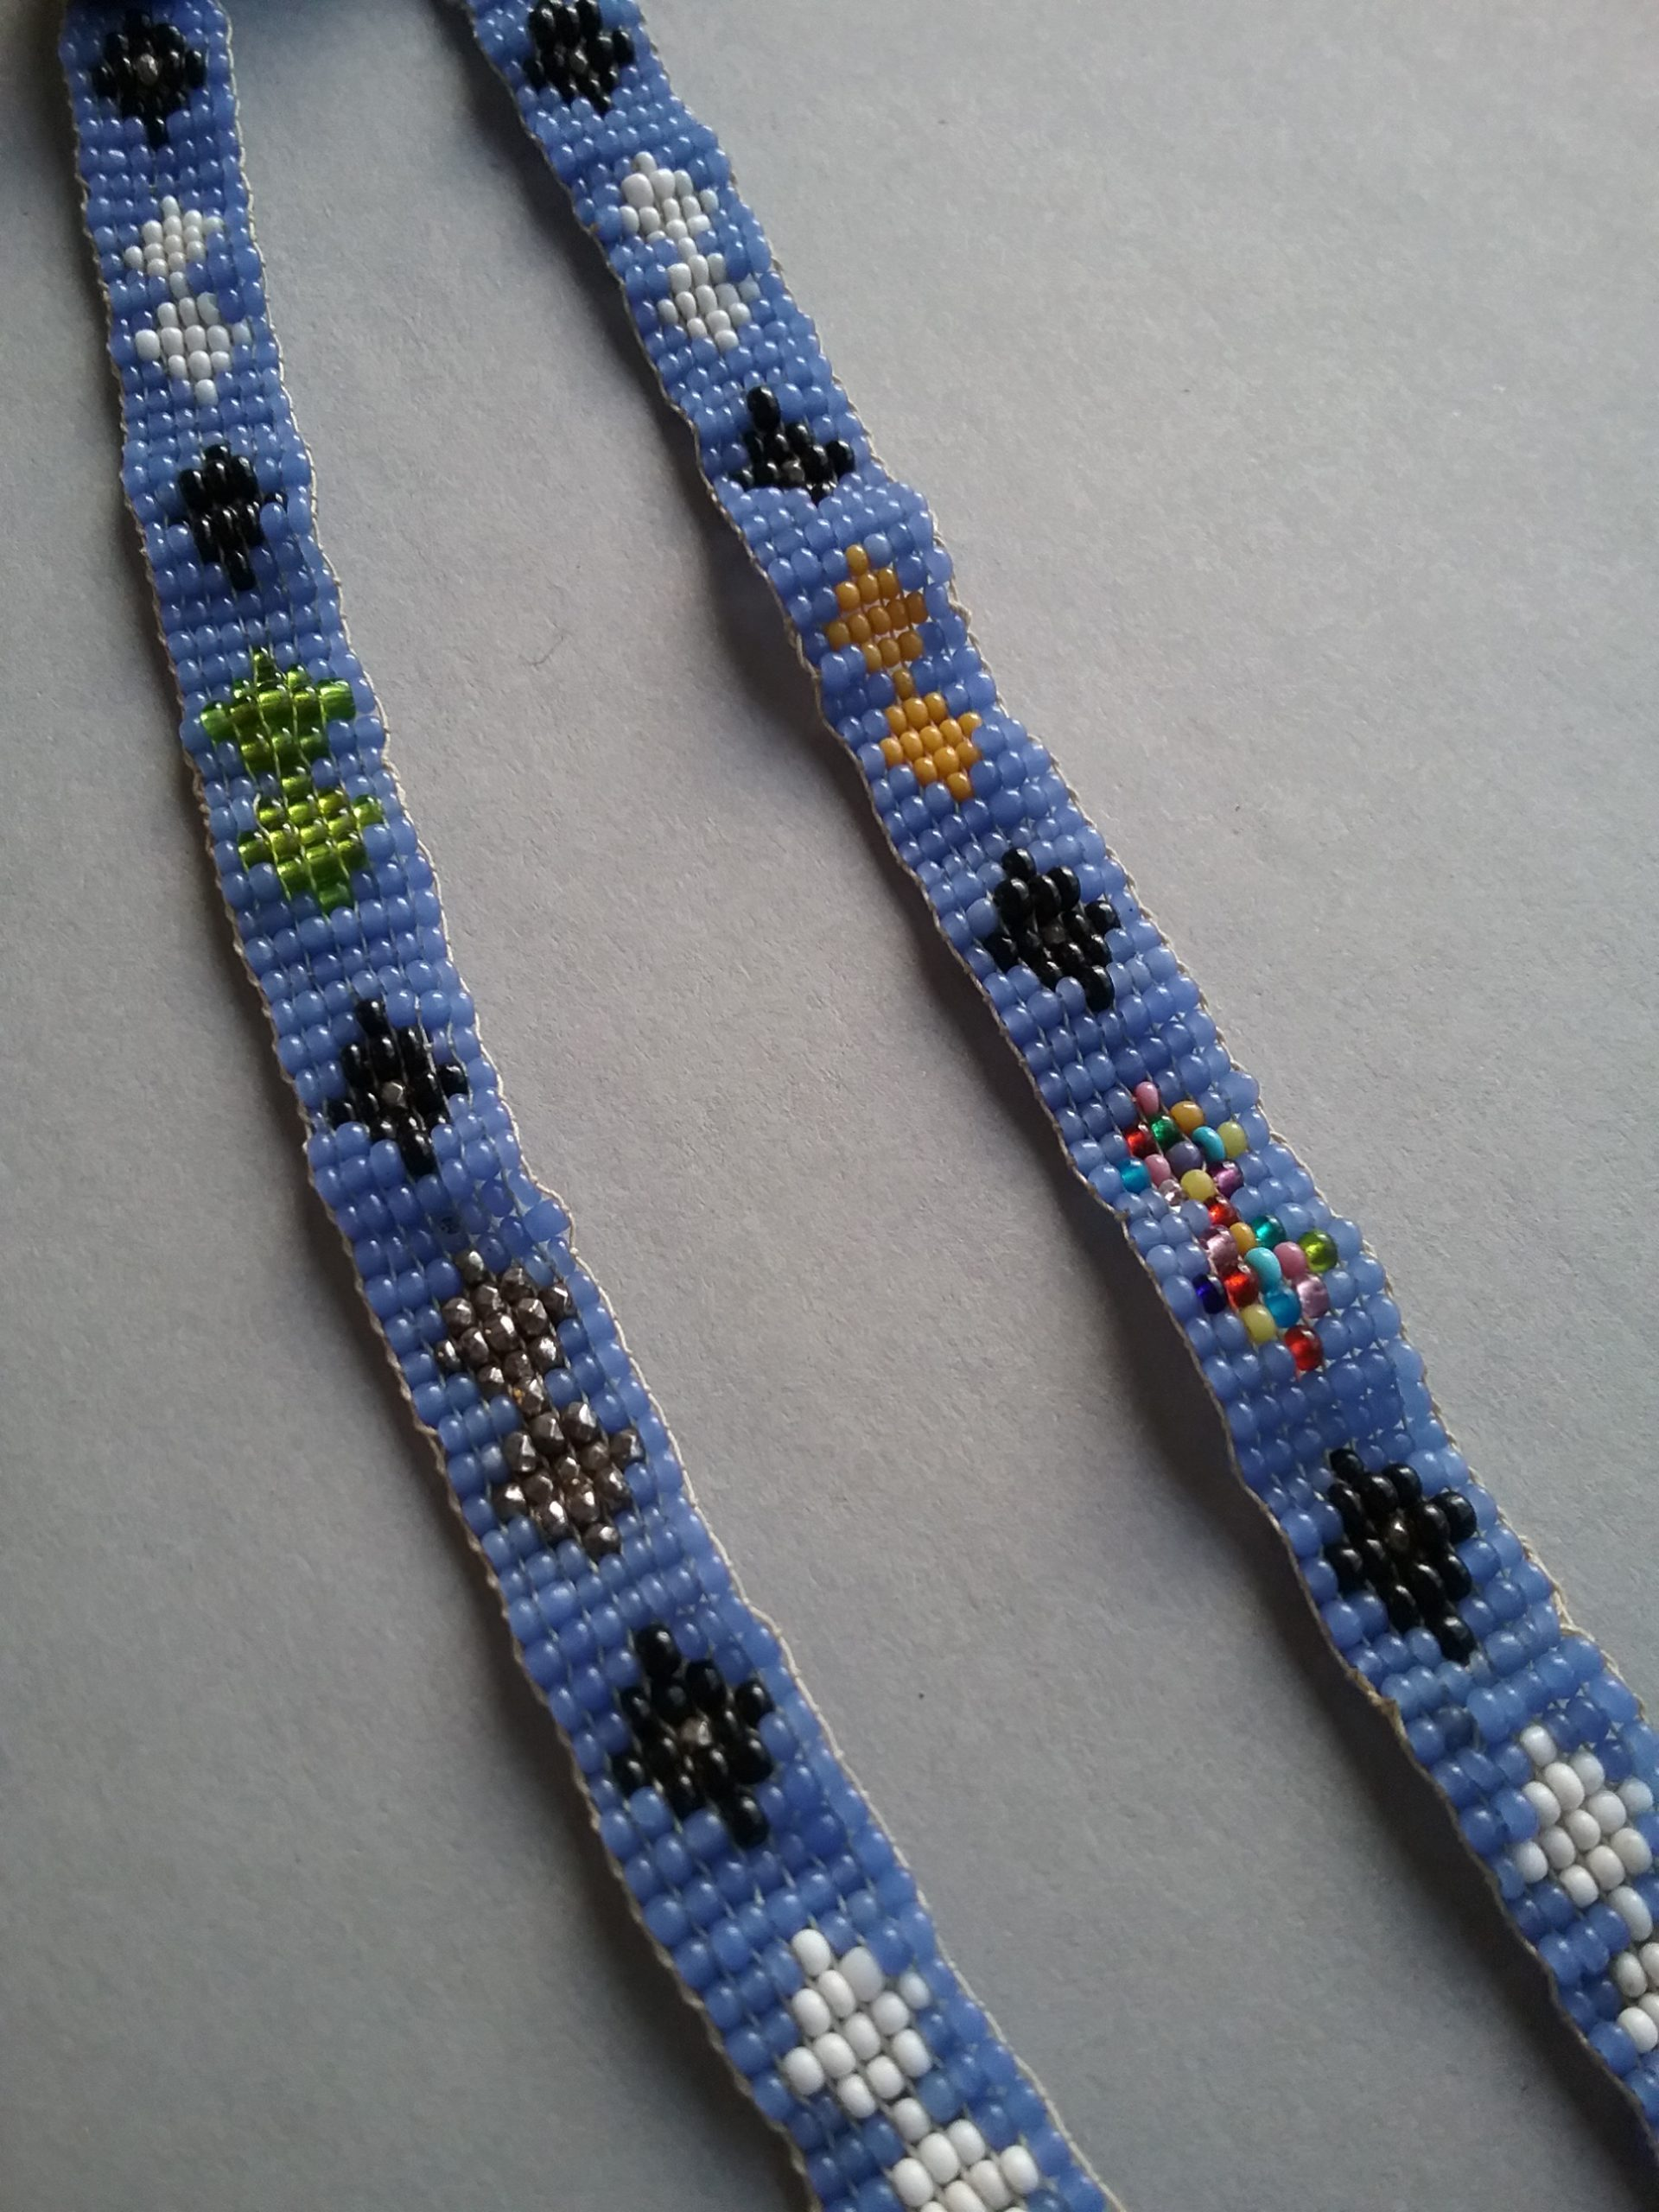 Narrow loom-woven band of beads featuring a light blue background with diamond patterns in various colors from the Hill & Richardson store operated in the 1870s by E.G. Hill and Nathan Richardson. Likely of Ojibwe origin. MCHS collections, #1945.76.